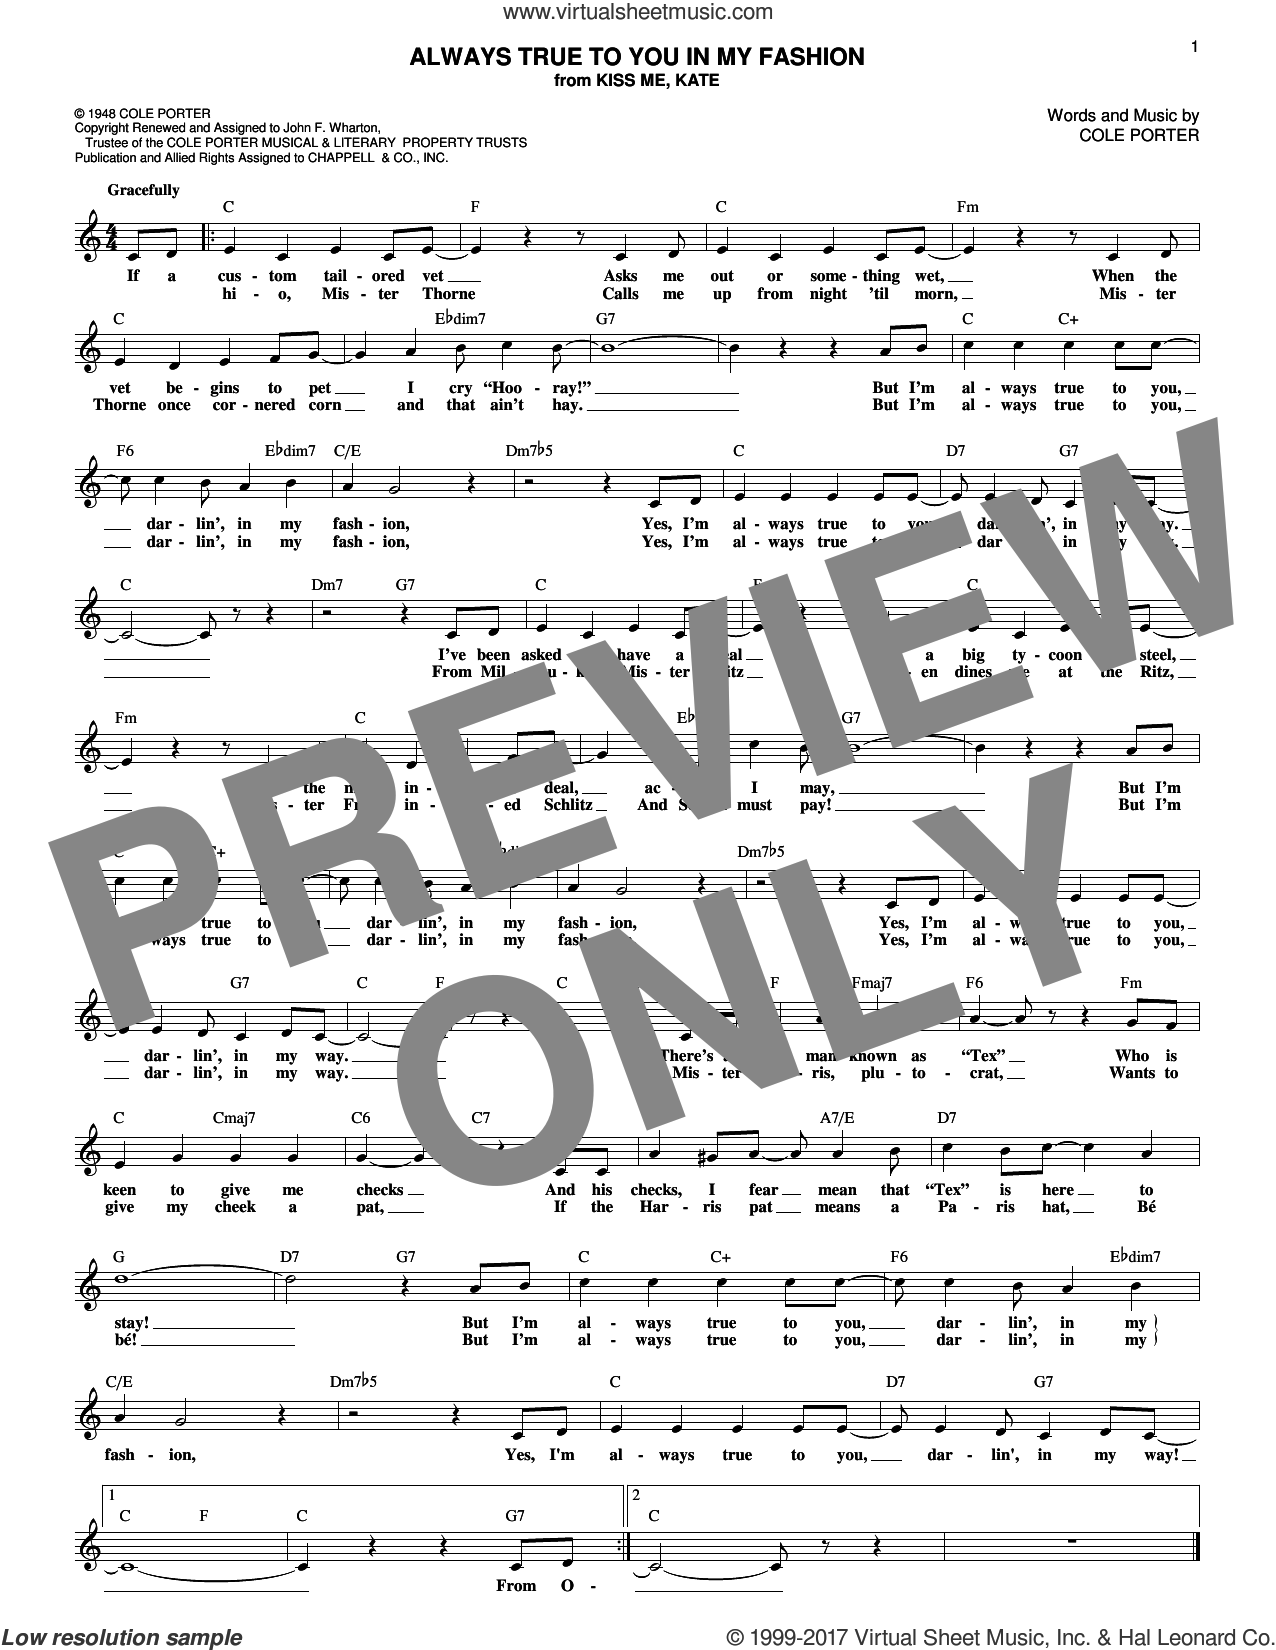 Always True To You In My Fashion (from Kiss Me, Kate) sheet music for voice and other instruments (fake book) by Cole Porter, Ann Miller & Tommy Rall, Jane Harvey and Jo Stafford, intermediate skill level